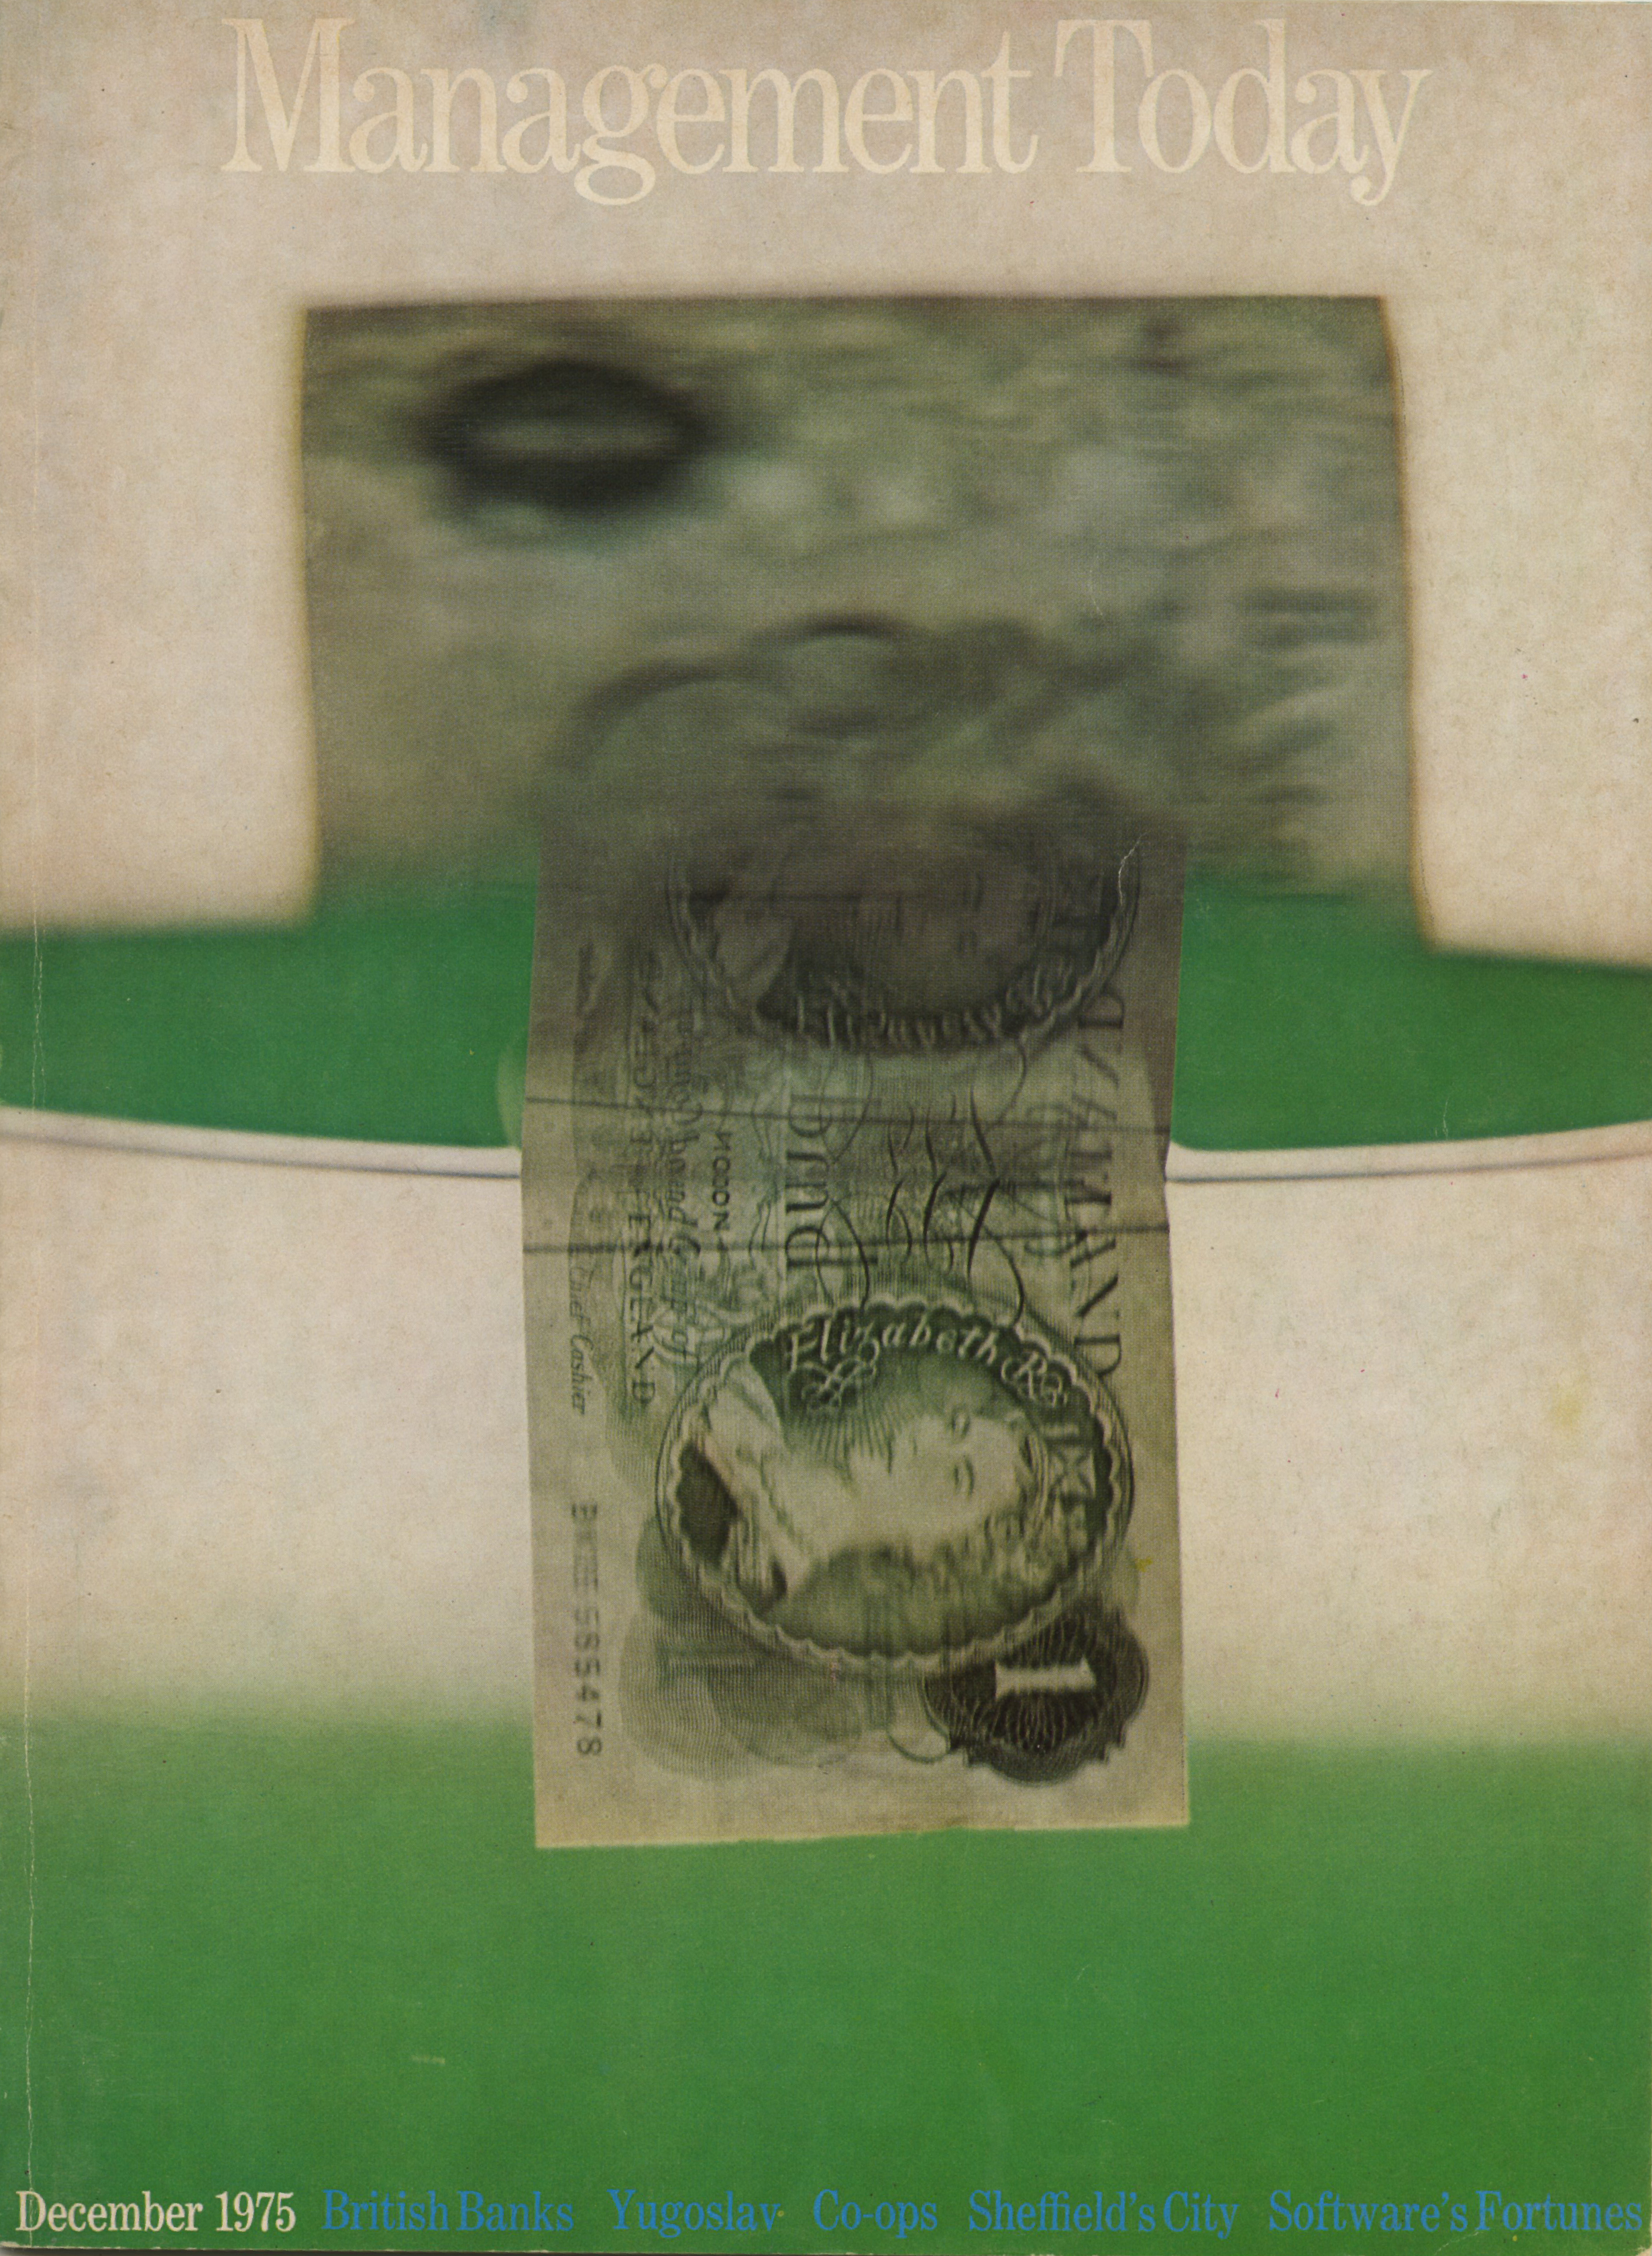 Lester Bookbinder, Management Today 'Green Pound'*-01